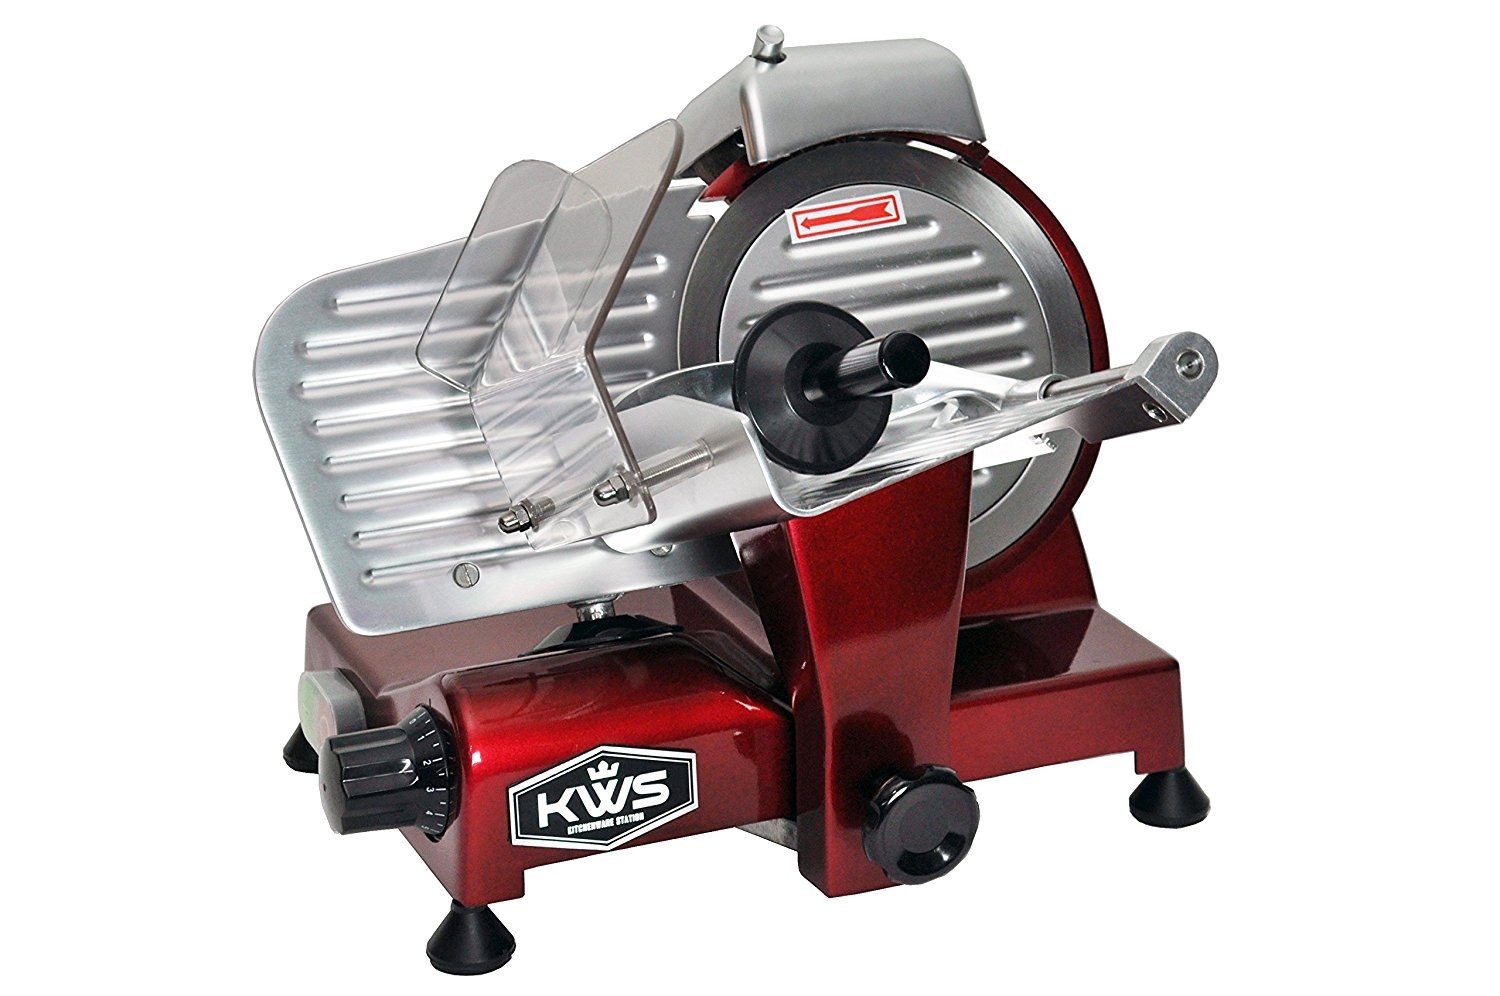 Kitchen Ware Station Meat Slicer